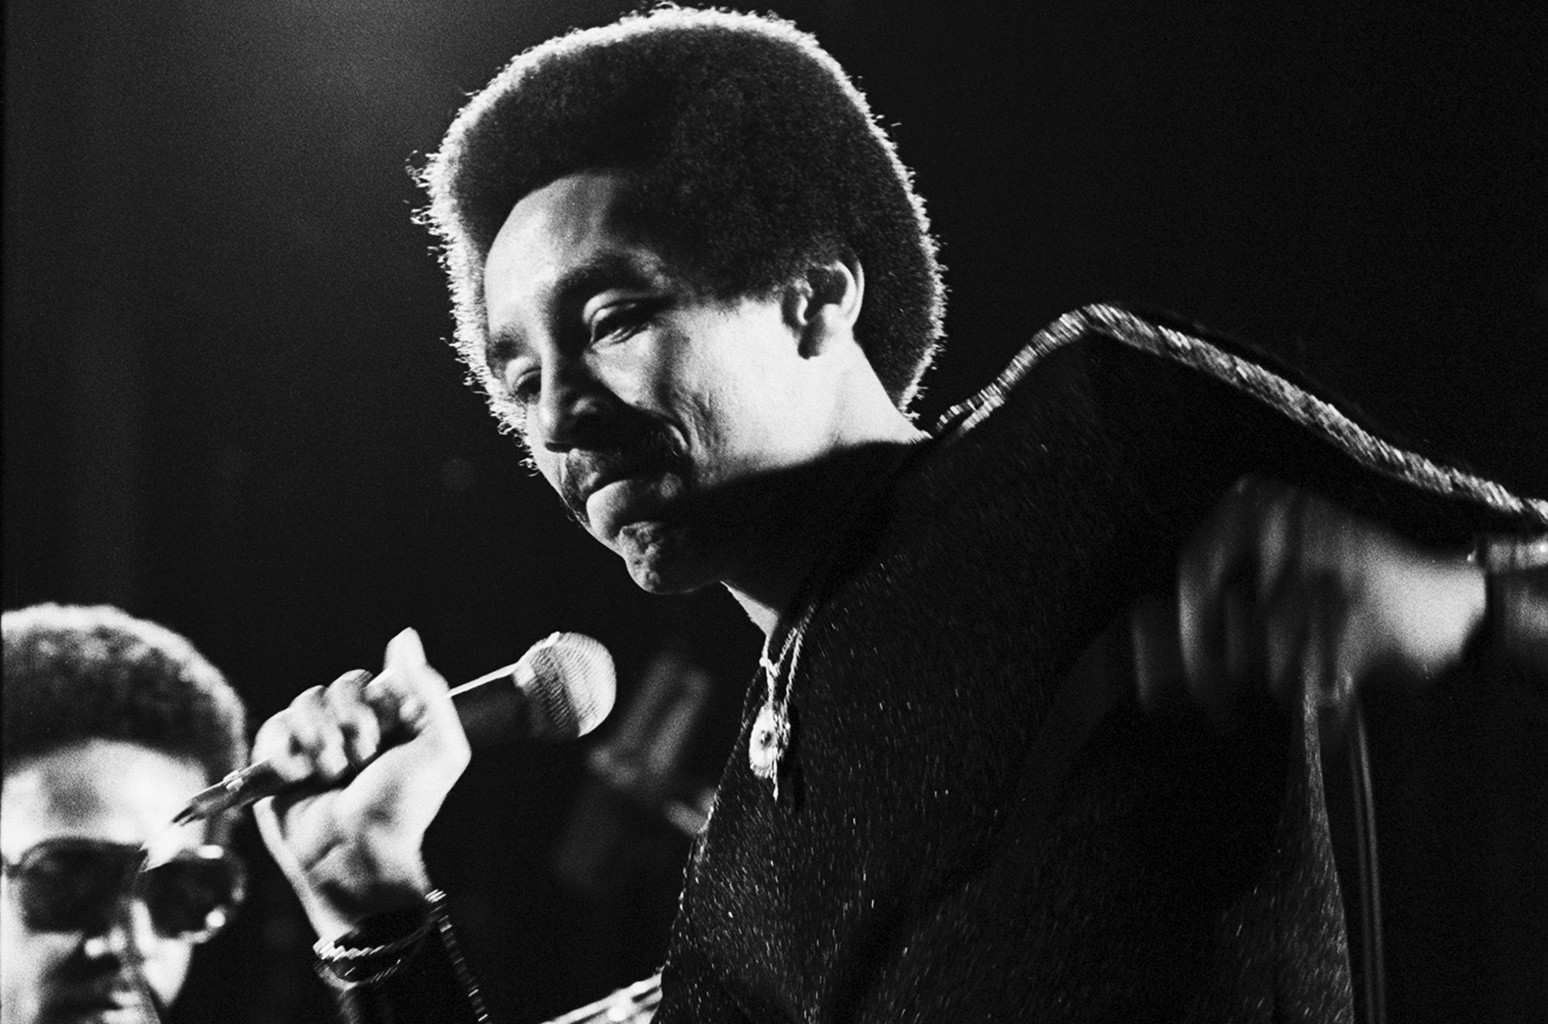 Smokey Robinson performing in 1975.